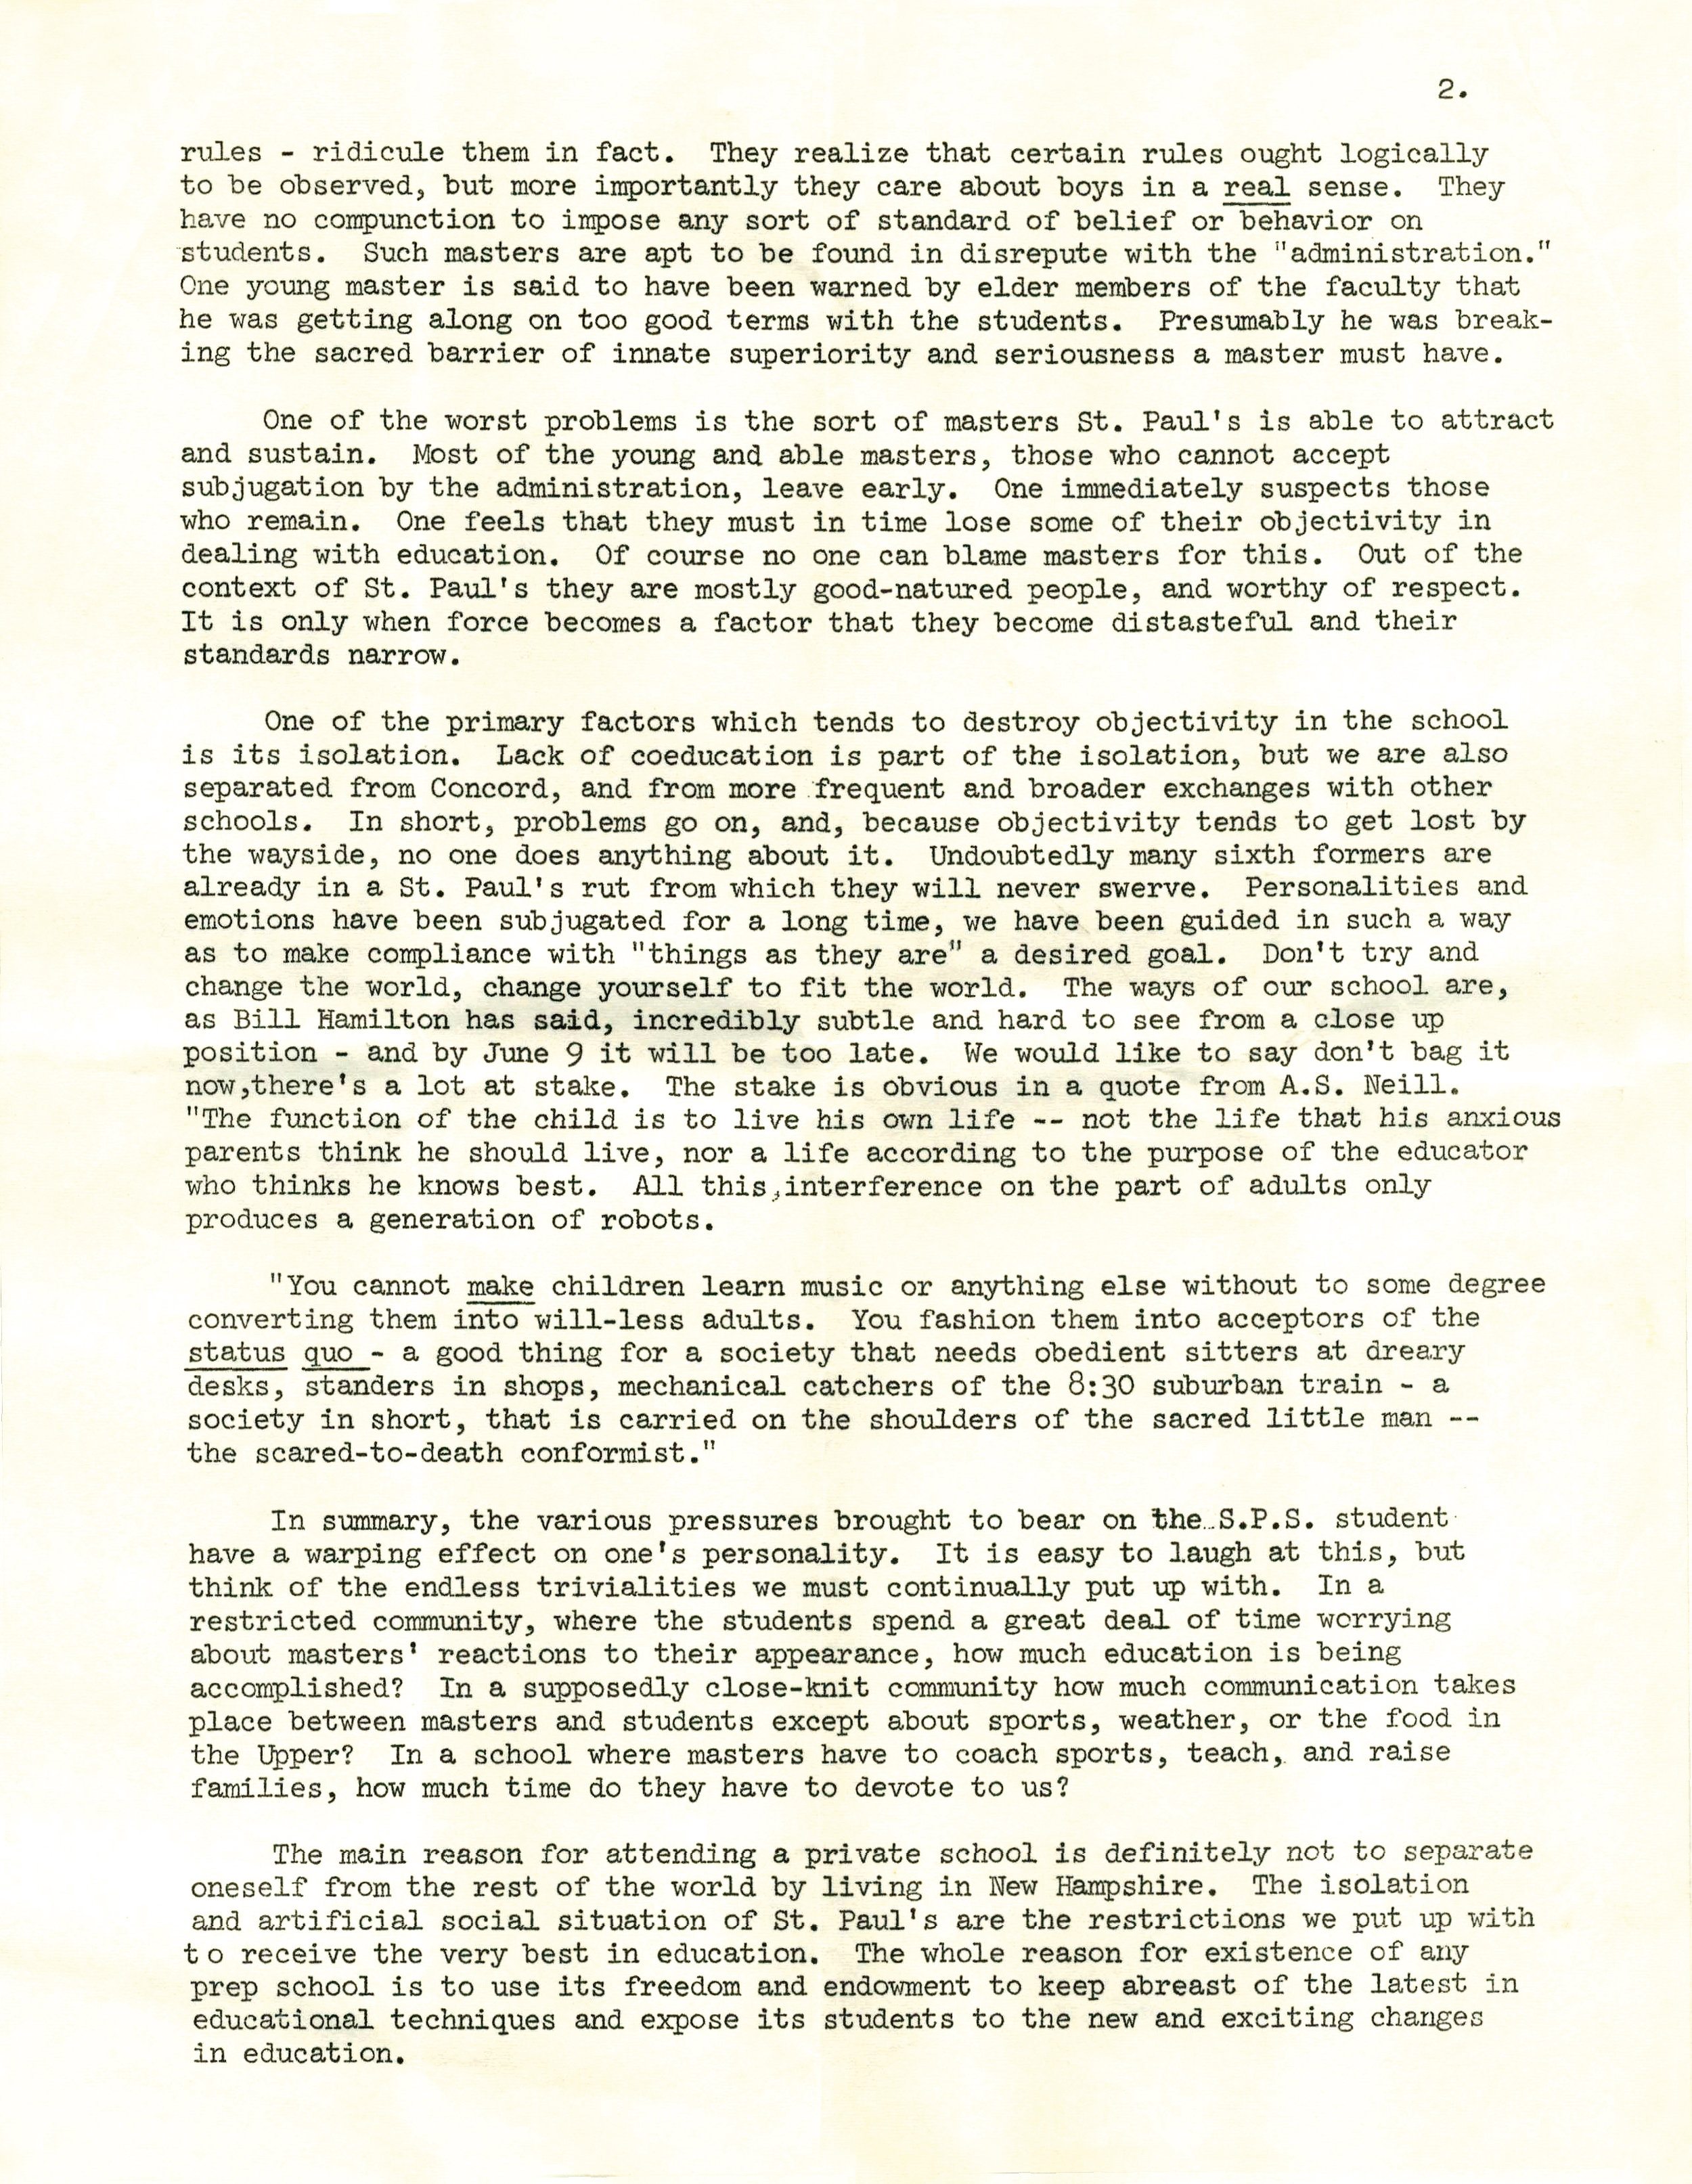 1968 Sixth Form Letter-2_.jpg